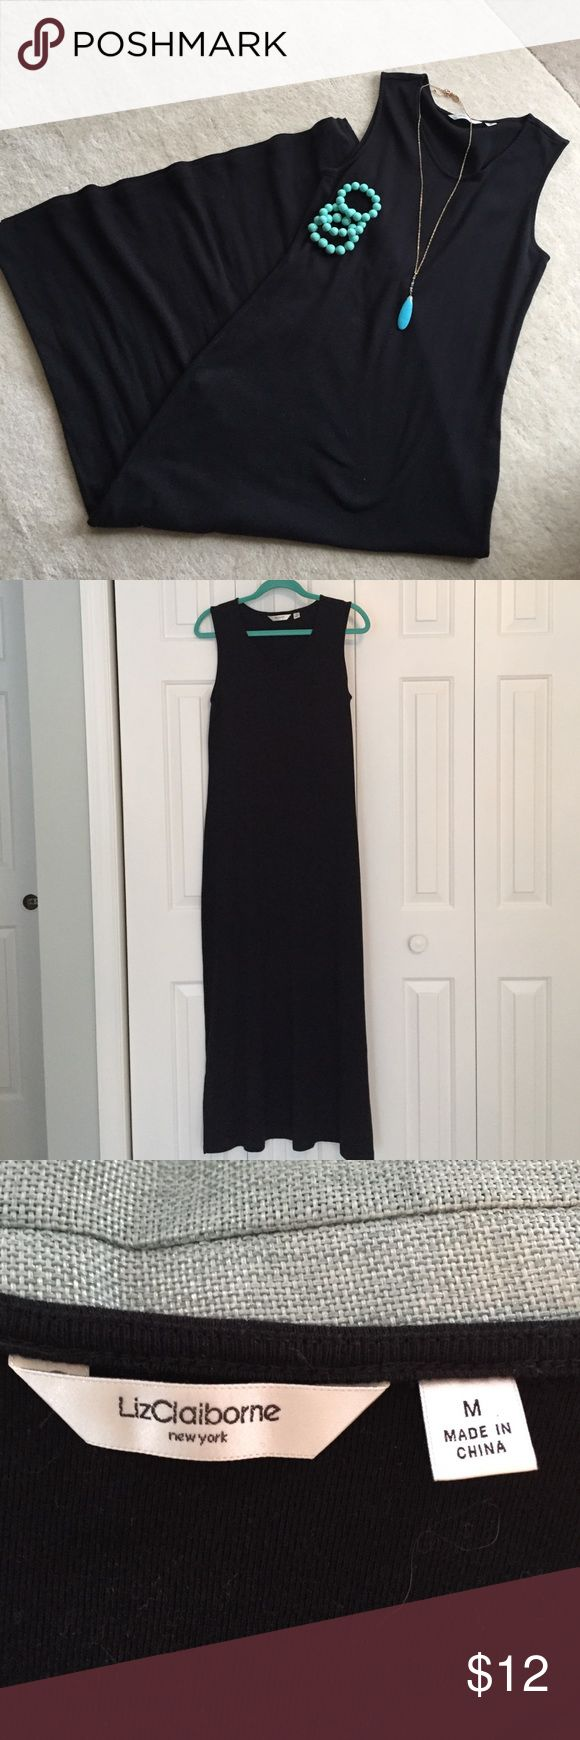 "Liz Claiborne Mew York Black Maxi Dress Liz Claiborne v-neck black maxi dress. 100% cotton, machine wash. Very good condition. Only worn a couple times. Semi-fitted & arm holes fit nicely so no bra showing. 8"" bottom side slits. You can do so much with this dress. Liz Claiborne Dresses Maxi"